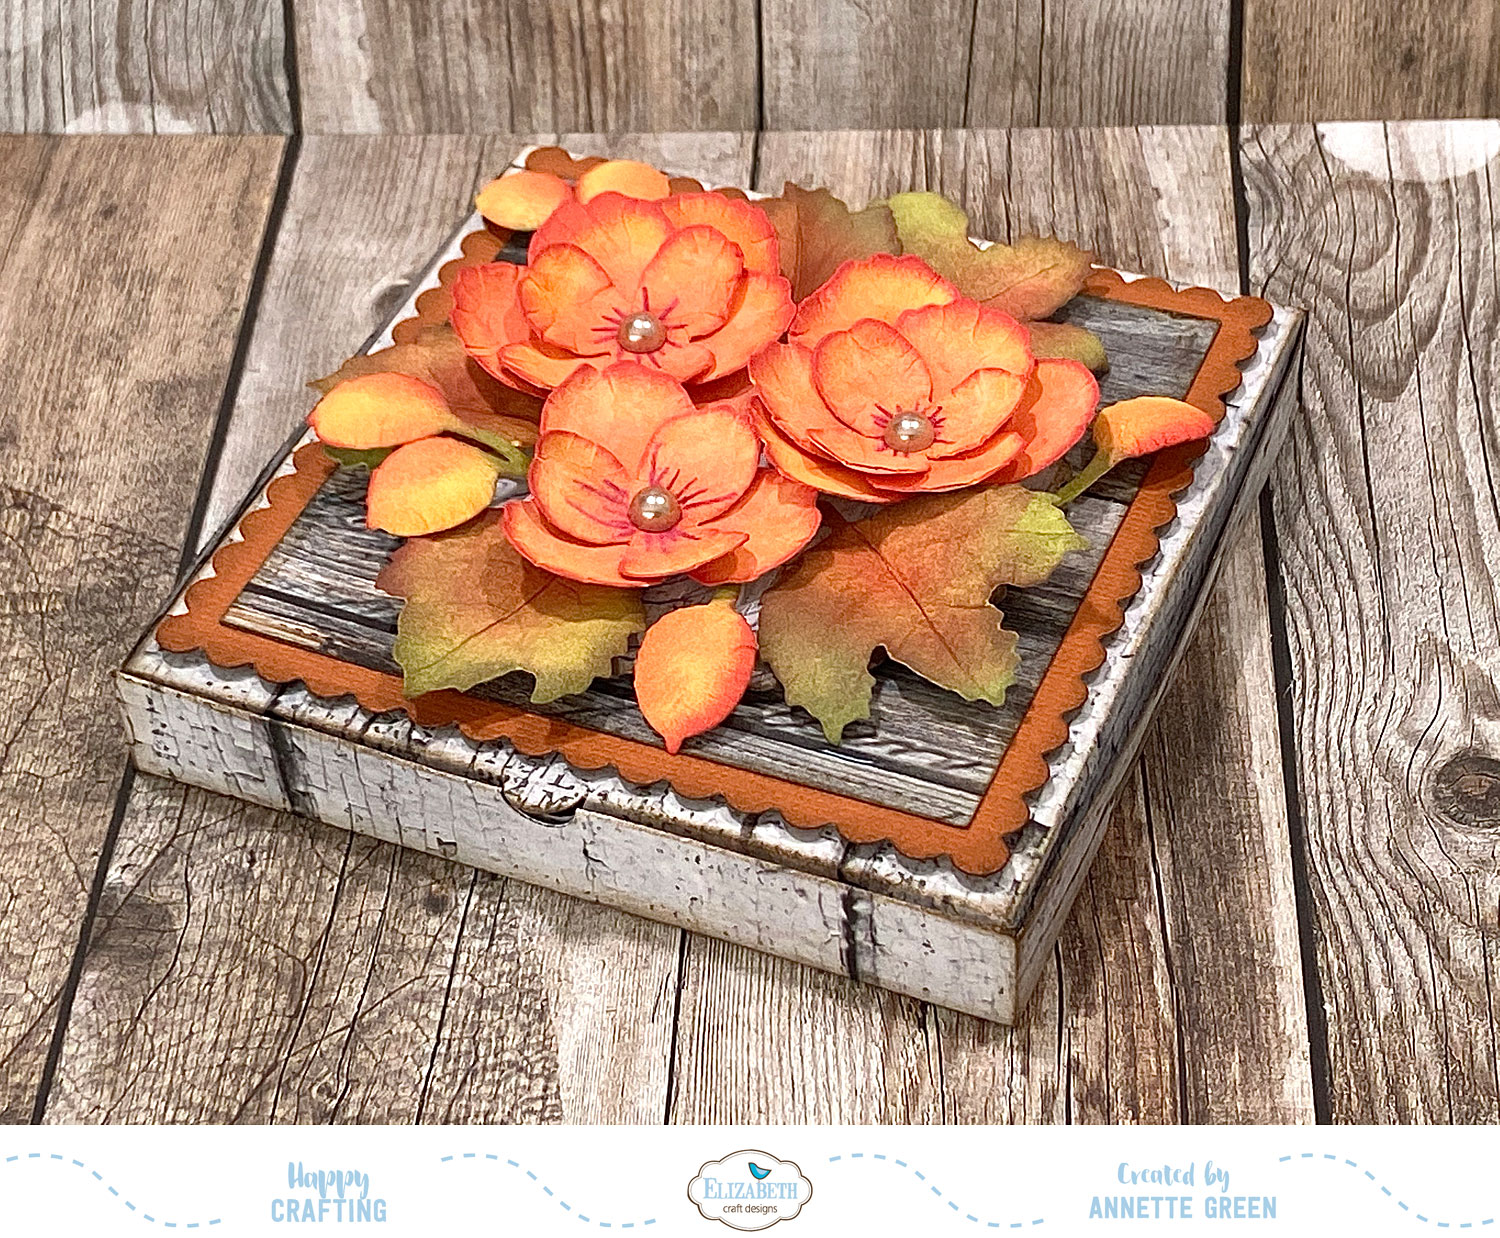 New layered flower and pizza box dies from Elizabeth Craft Designs -  Annette's Creative Journey